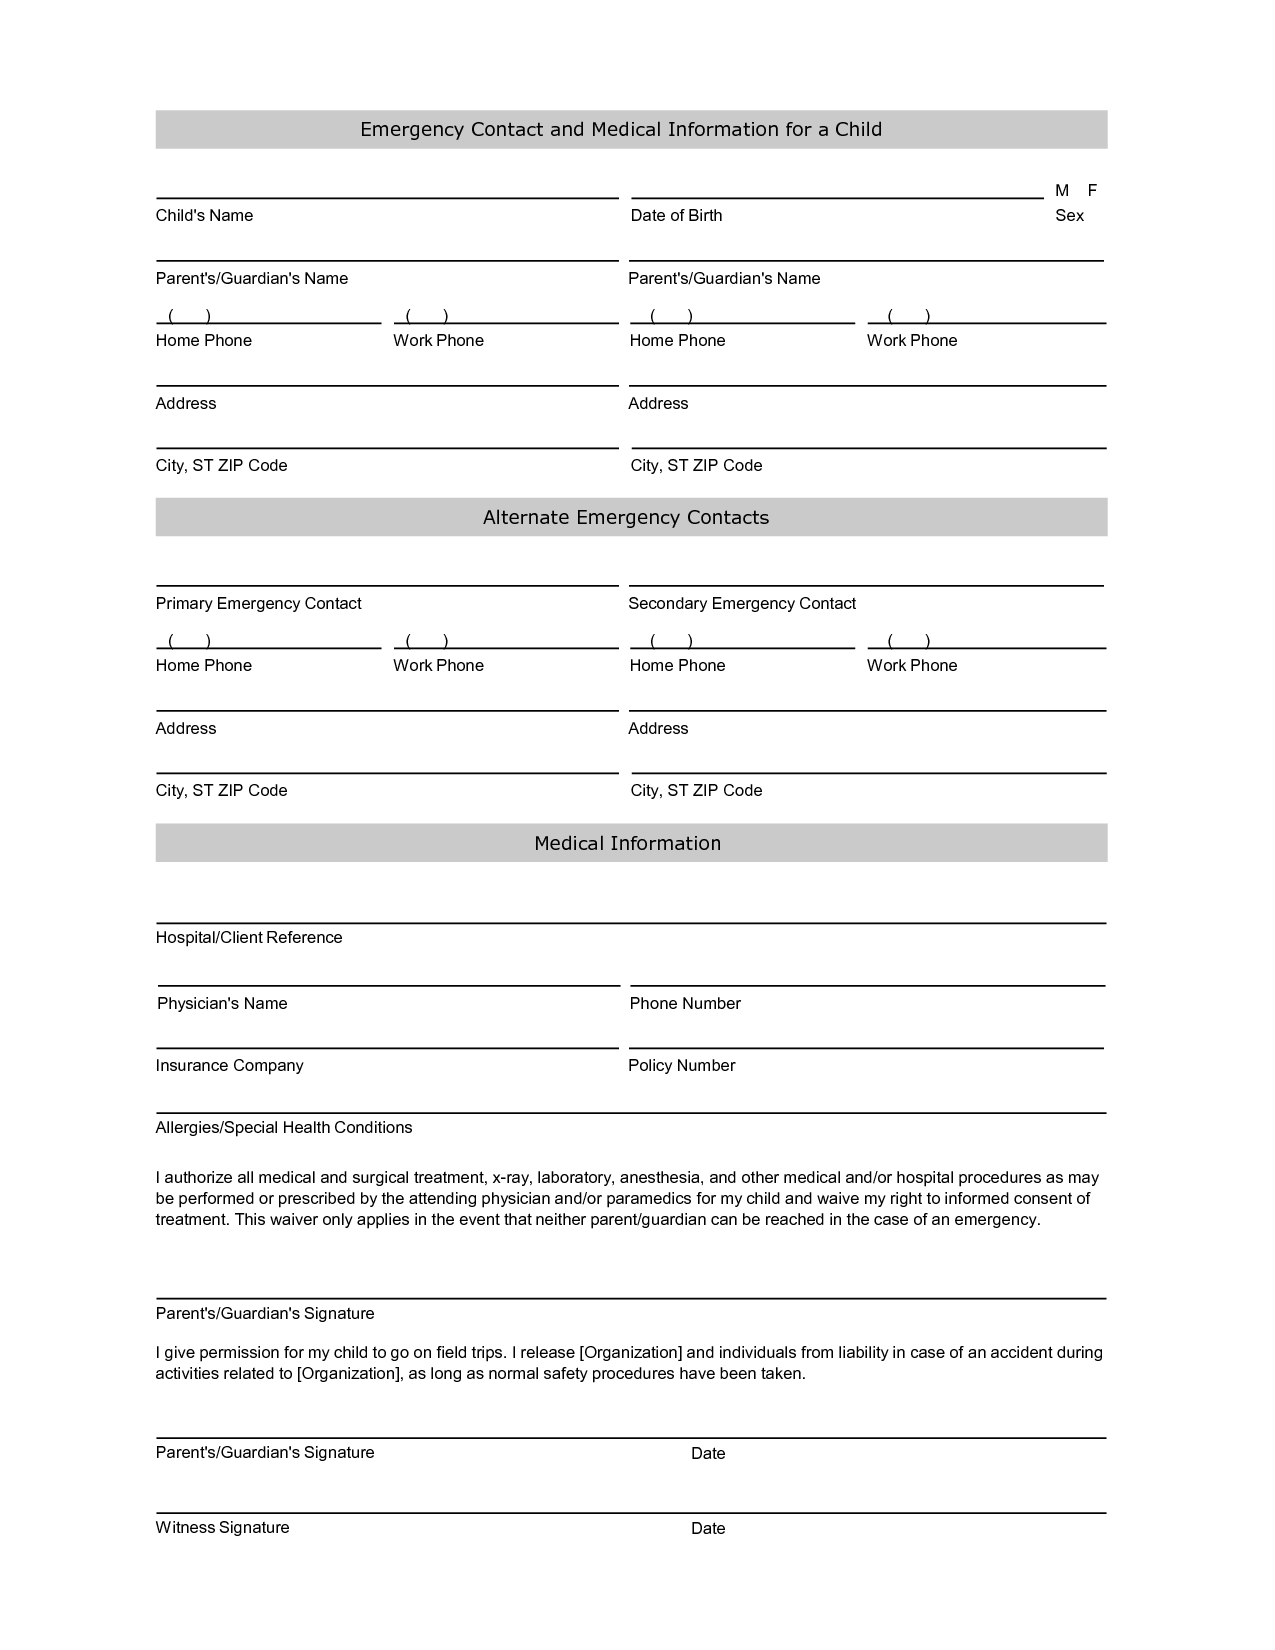 Emergency Contact Information Form Template | Emergency Within Student Information Card Template